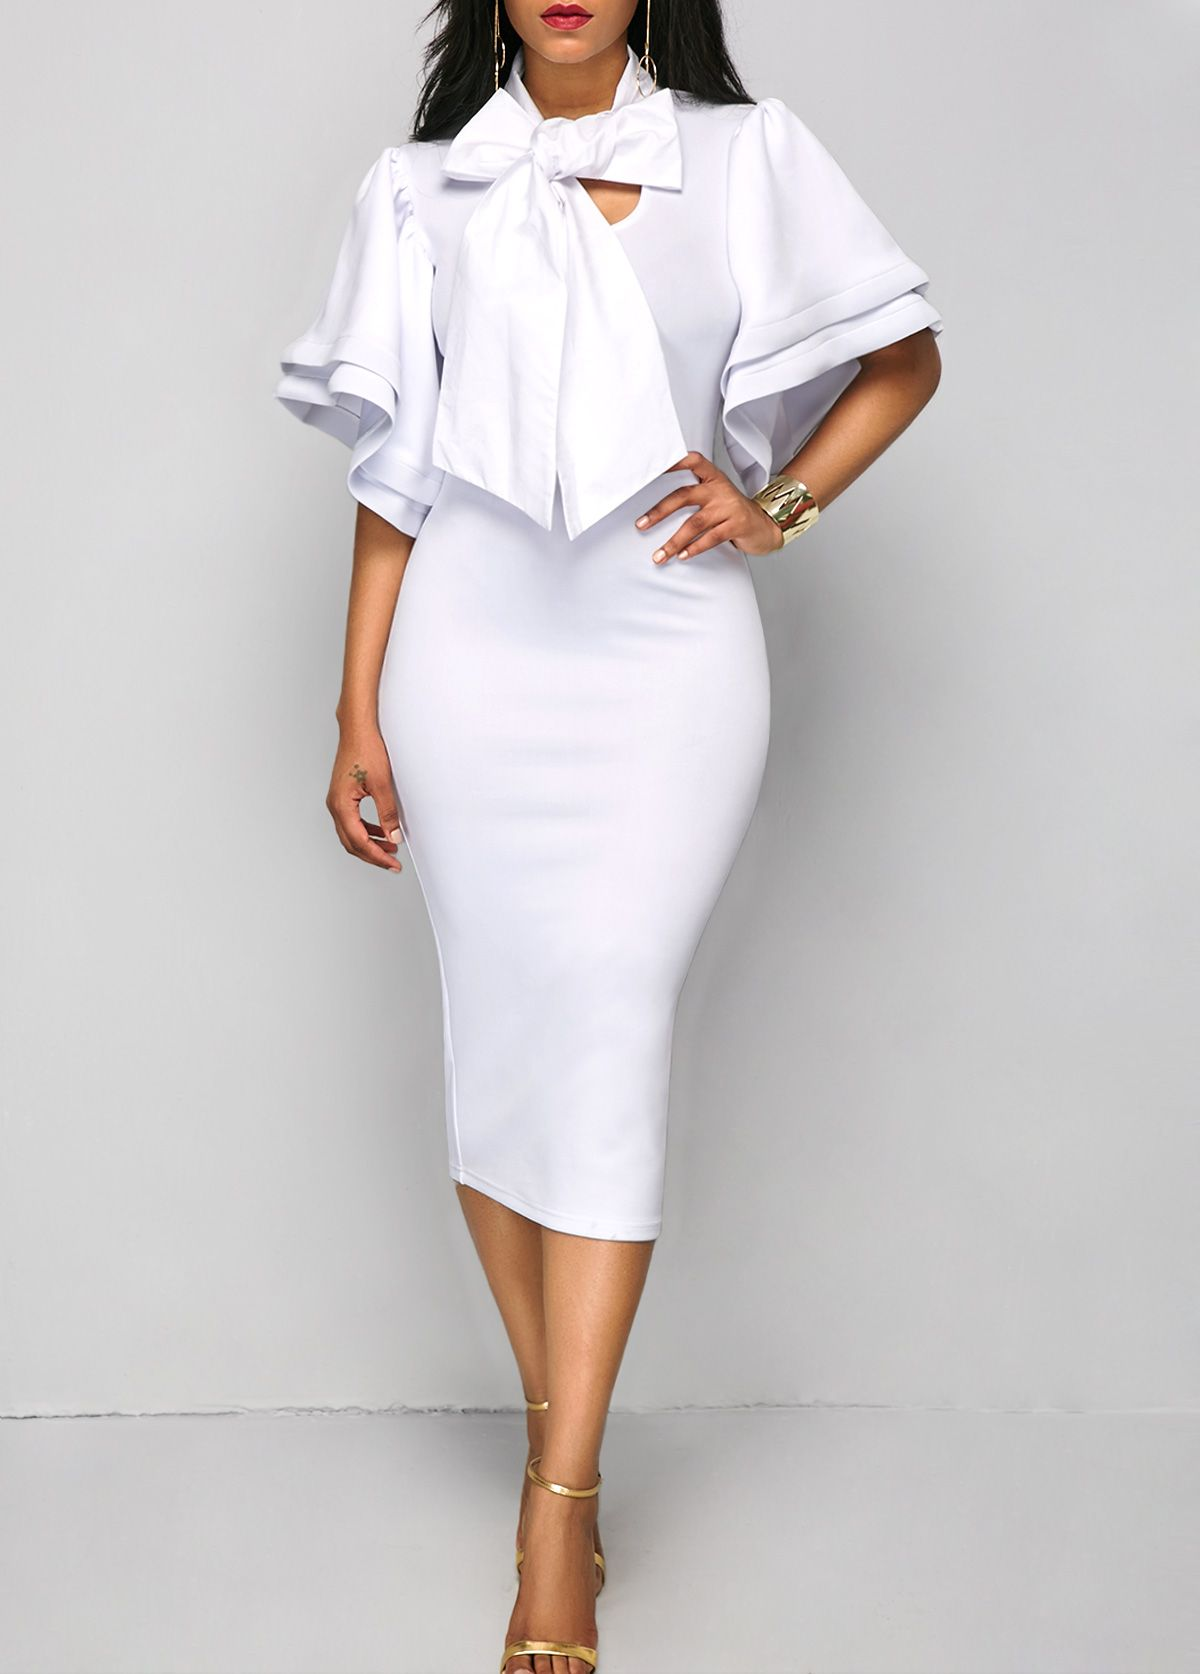 7a5bdb9943b8 Flare Sleeve Tie Neck White Sheath Dress on sale only US 34.90 now ...